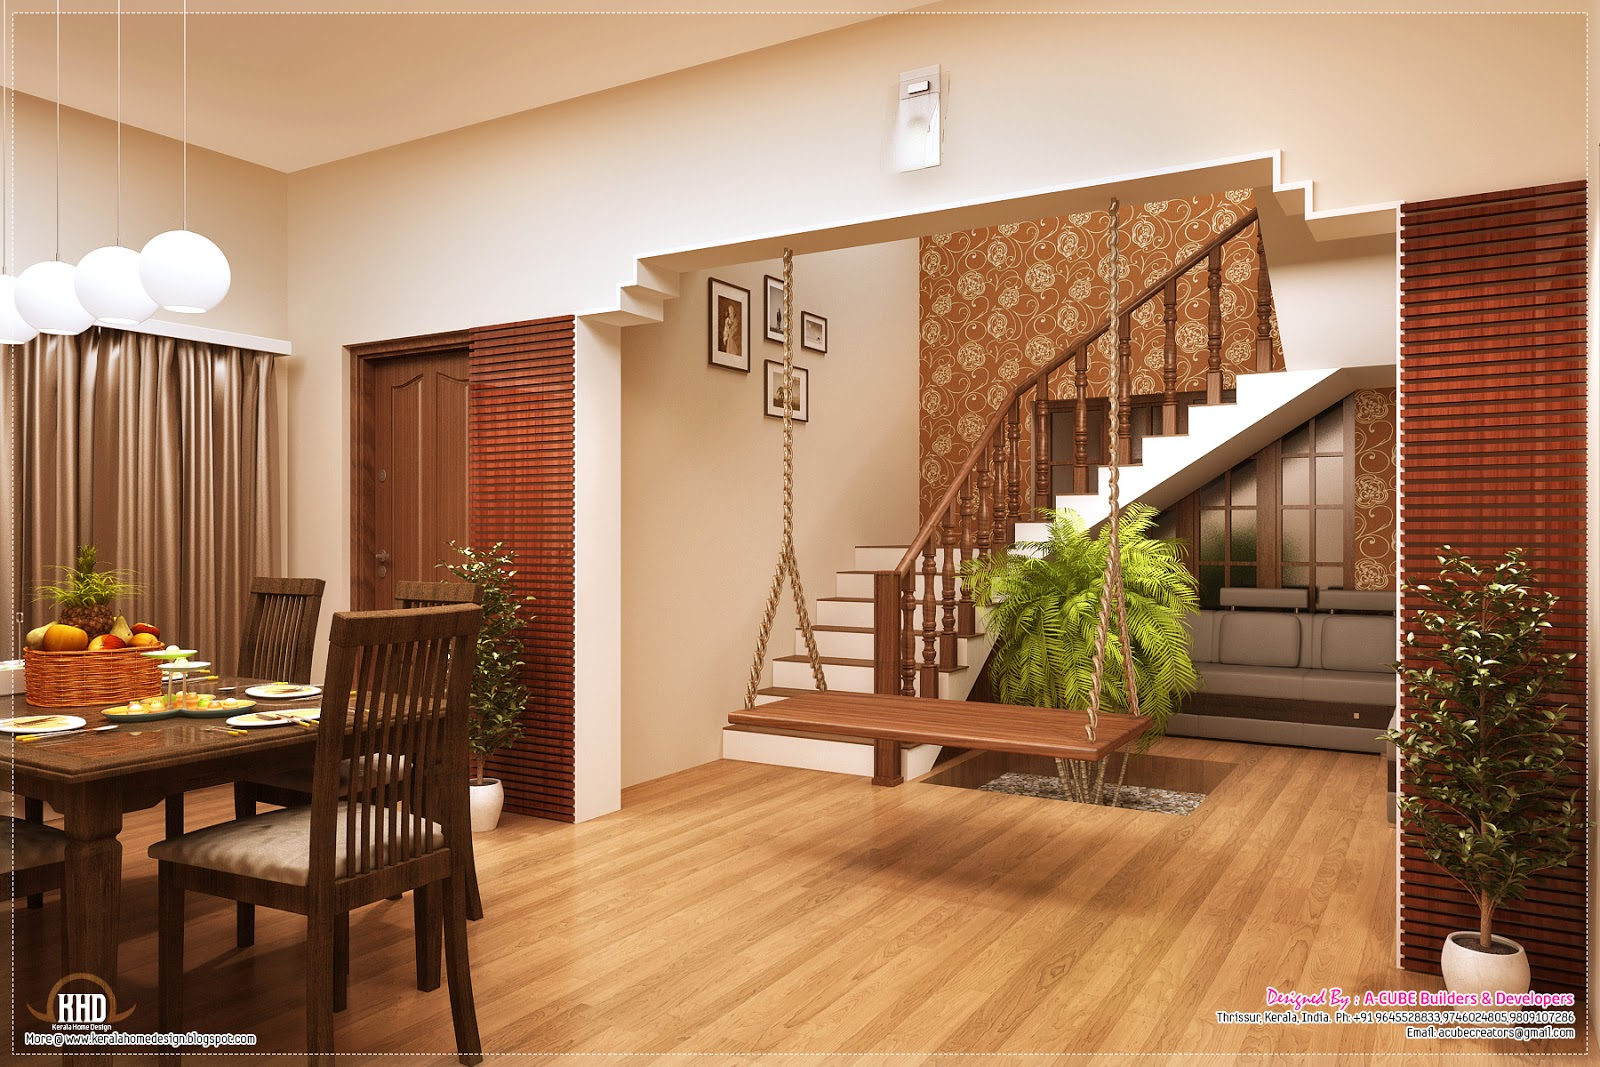 Awesome interior decoration ideas kerala home design and for Kerala homes interior designs